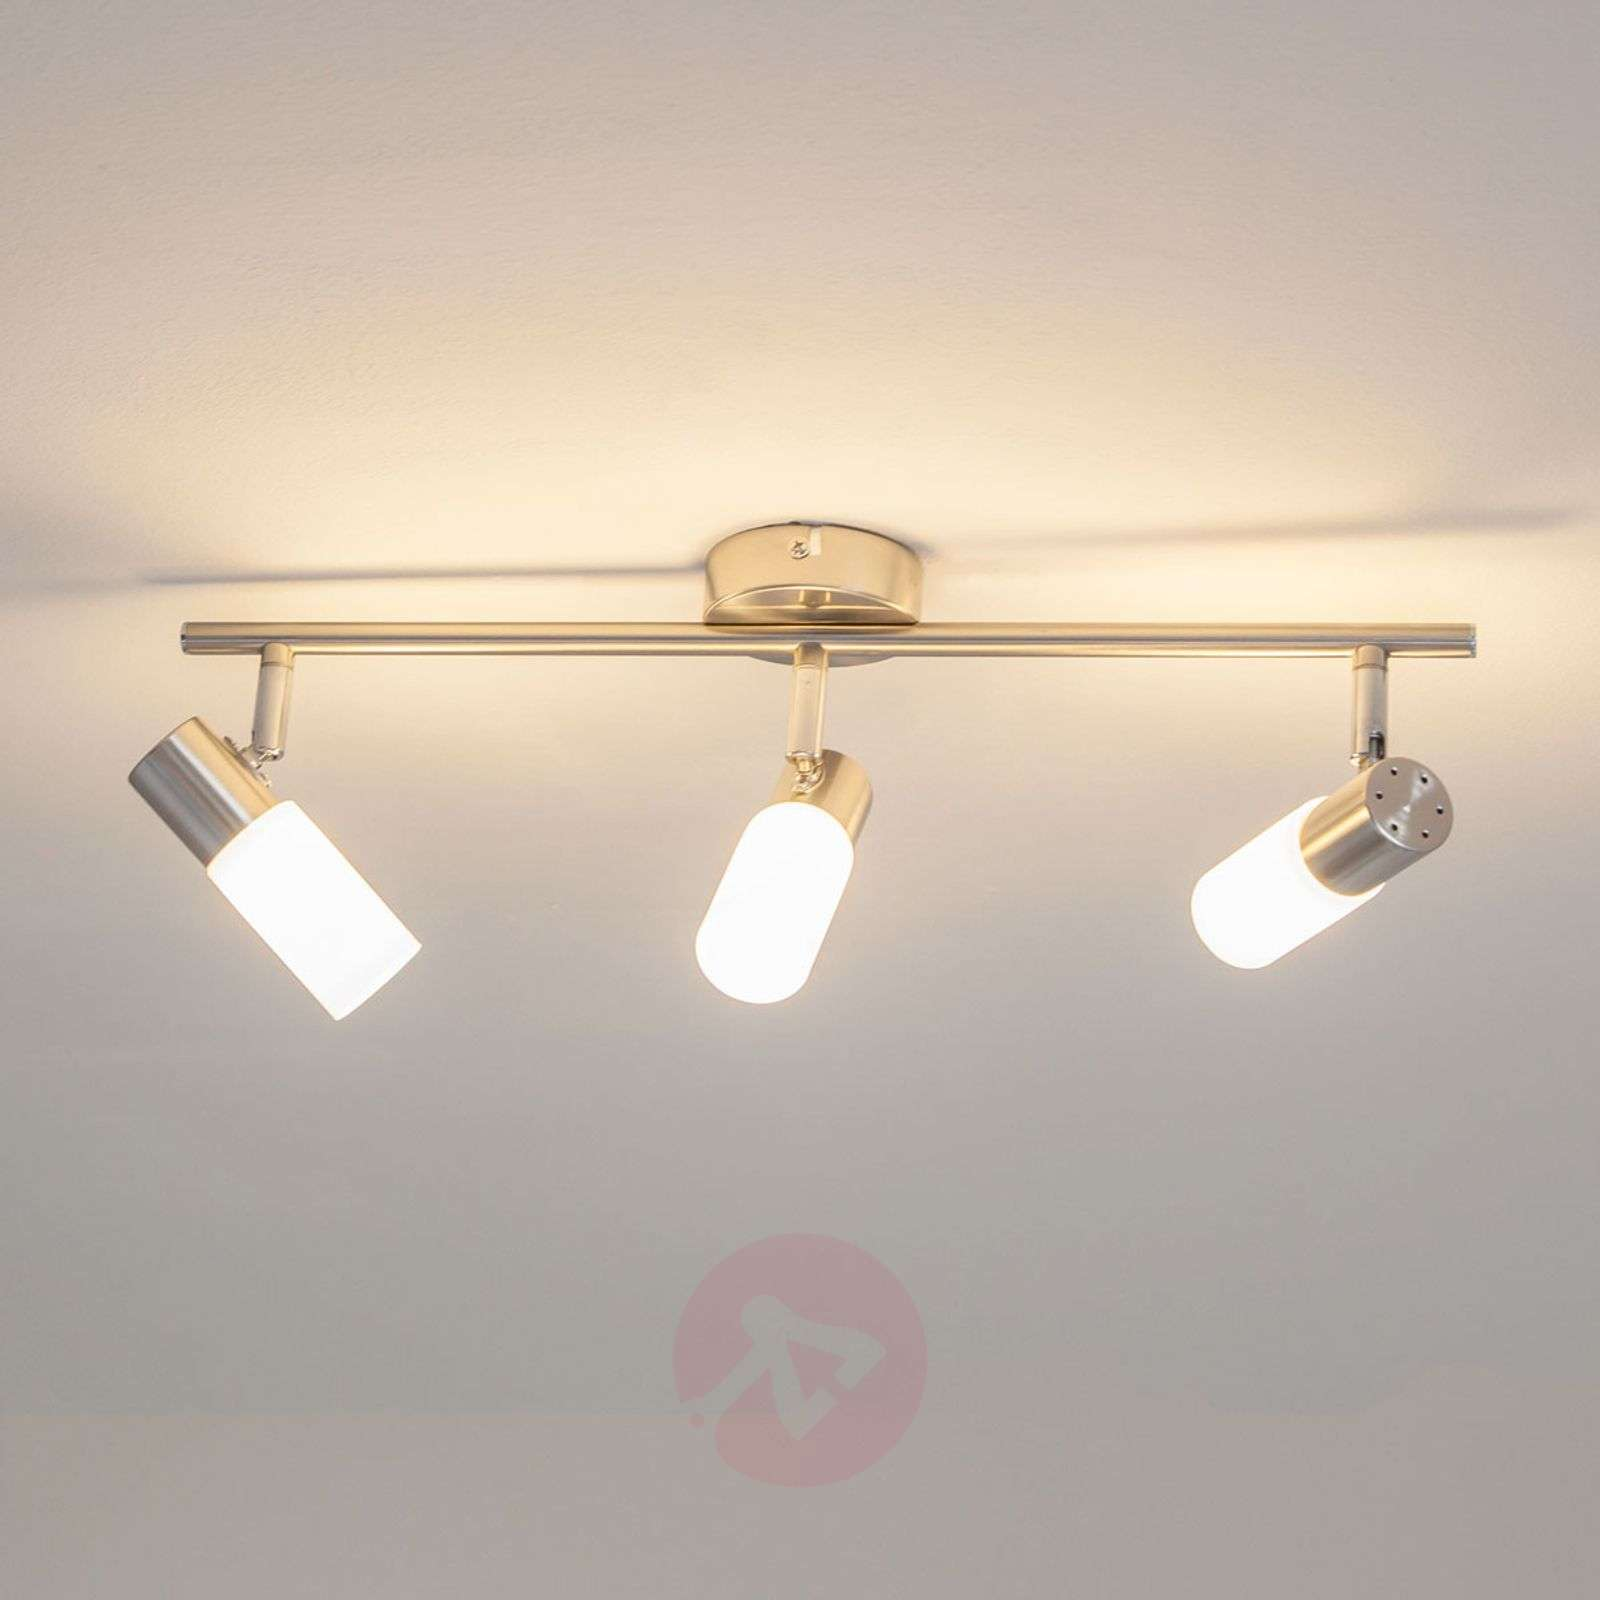 Plafonnier LED Tamia à 3 lampes de couleur nickel-9950516-01